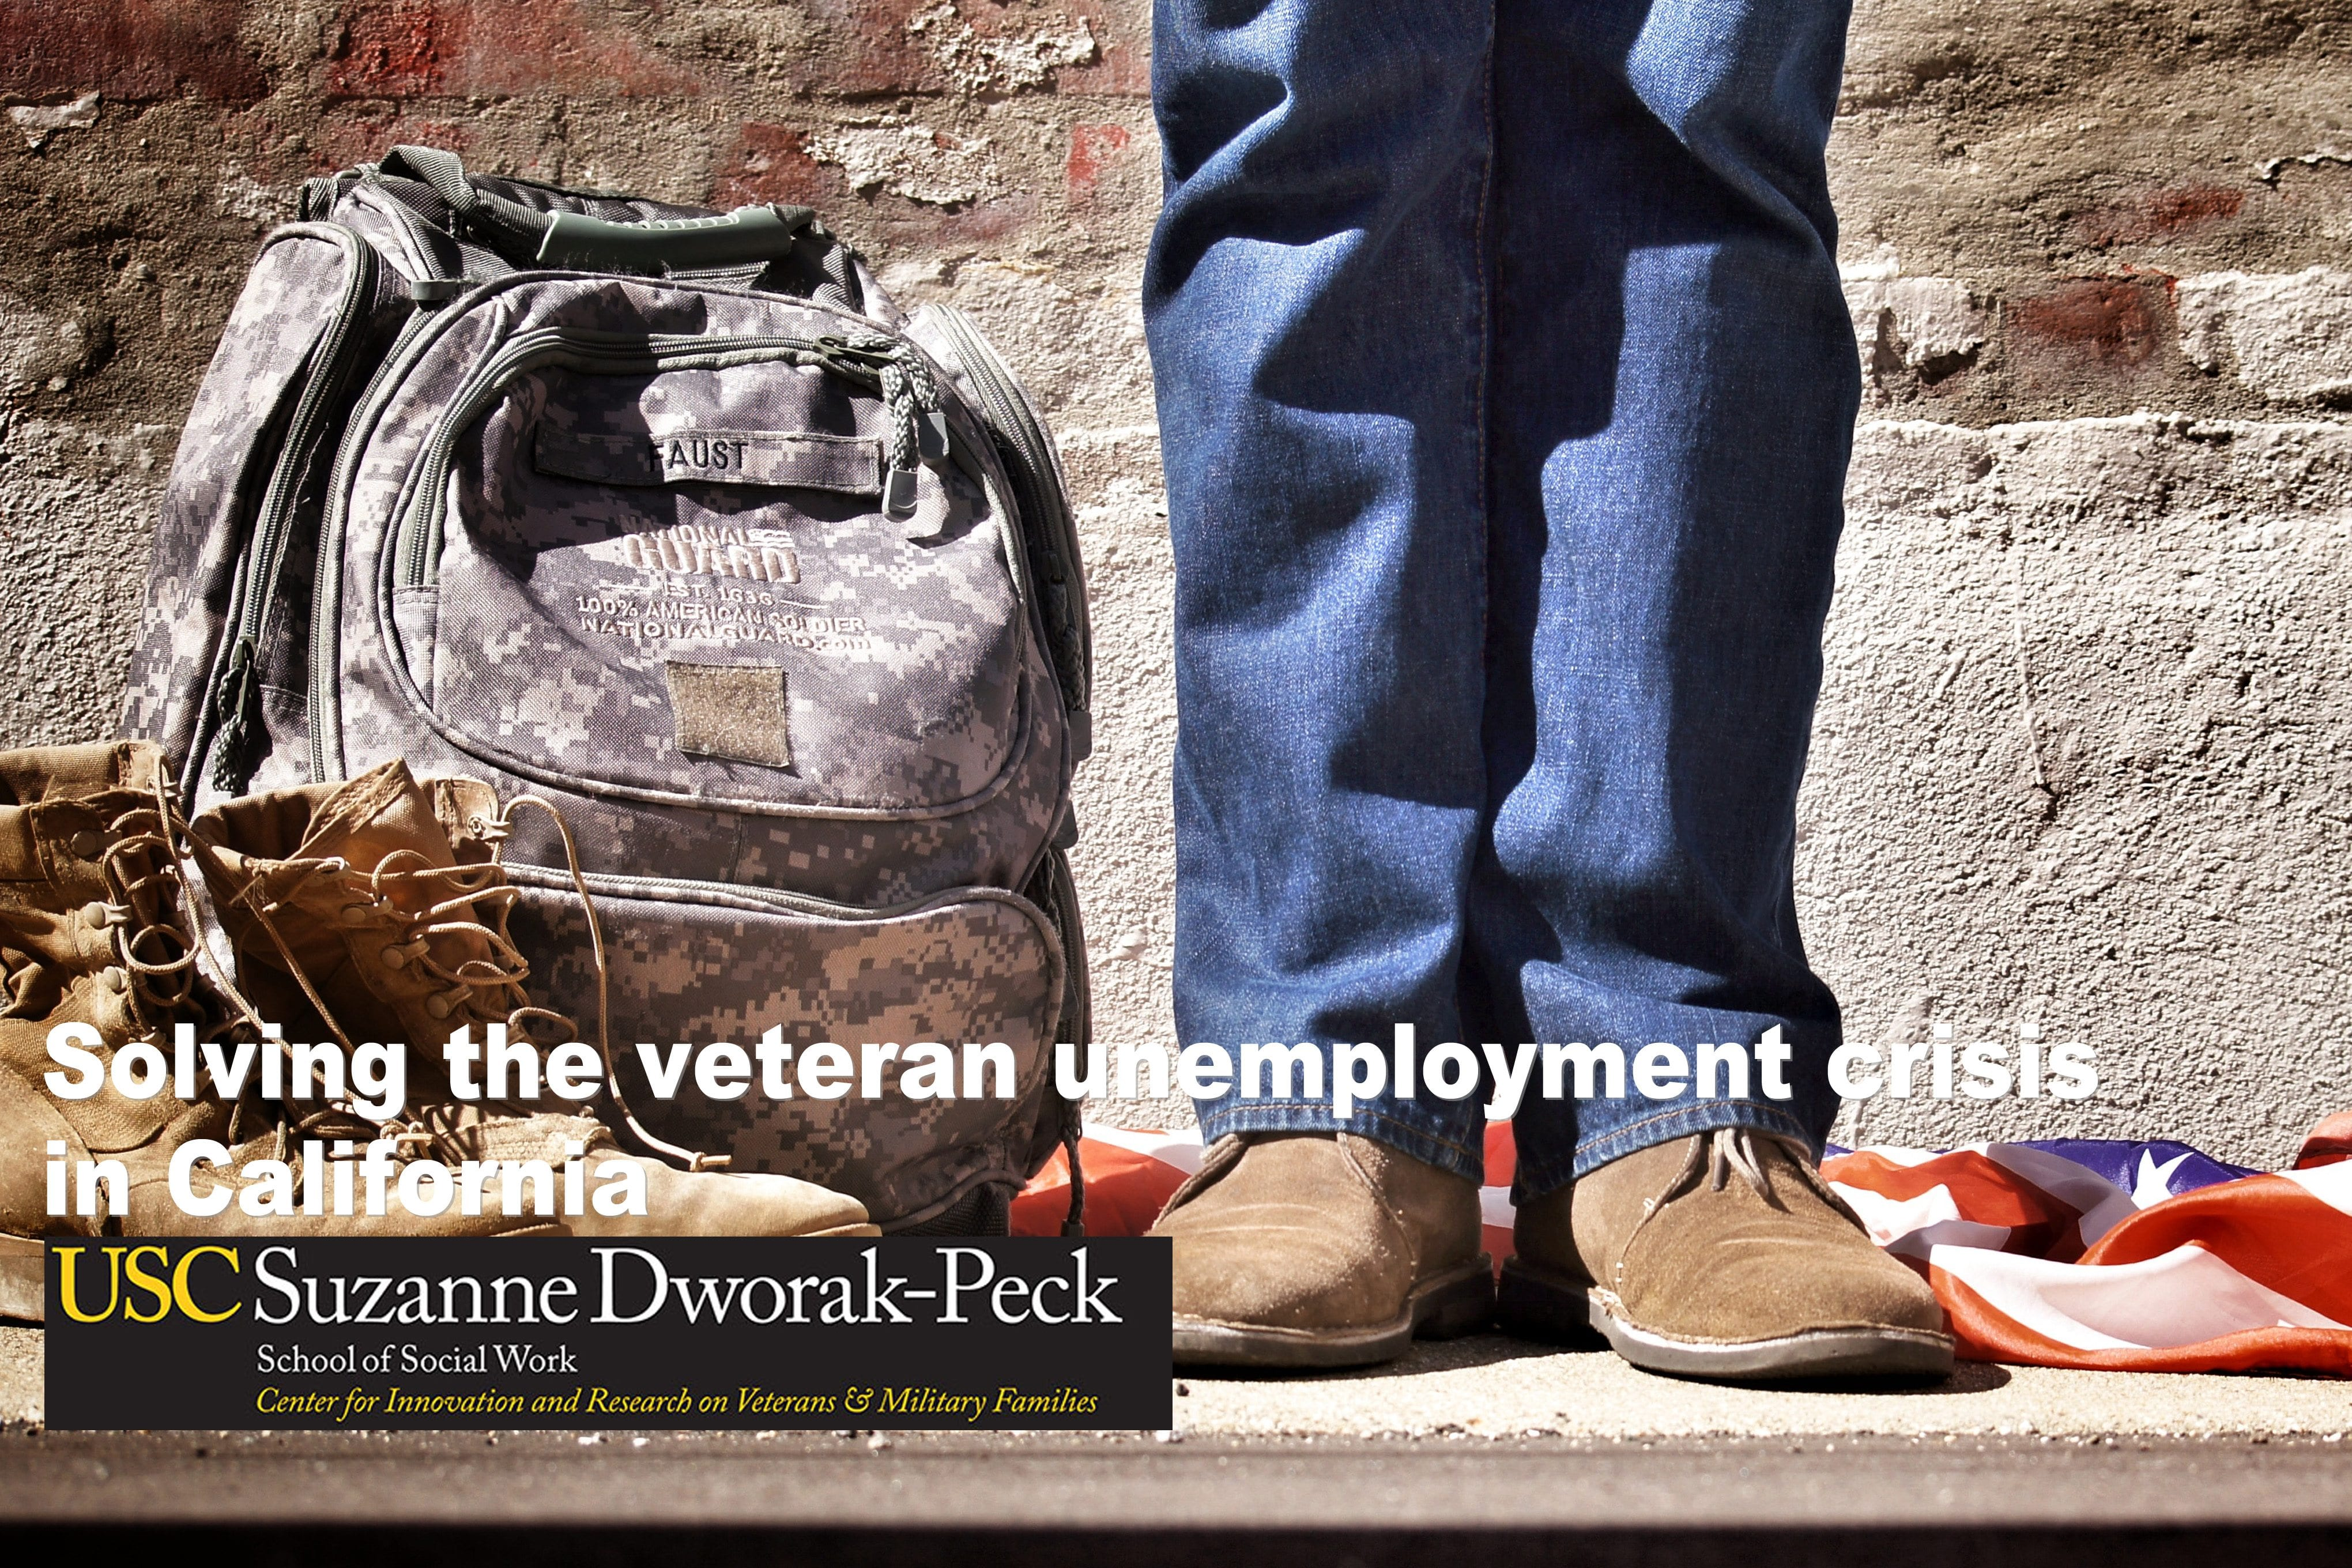 Image Solving the veteran unemployment crisis in California USC CIR